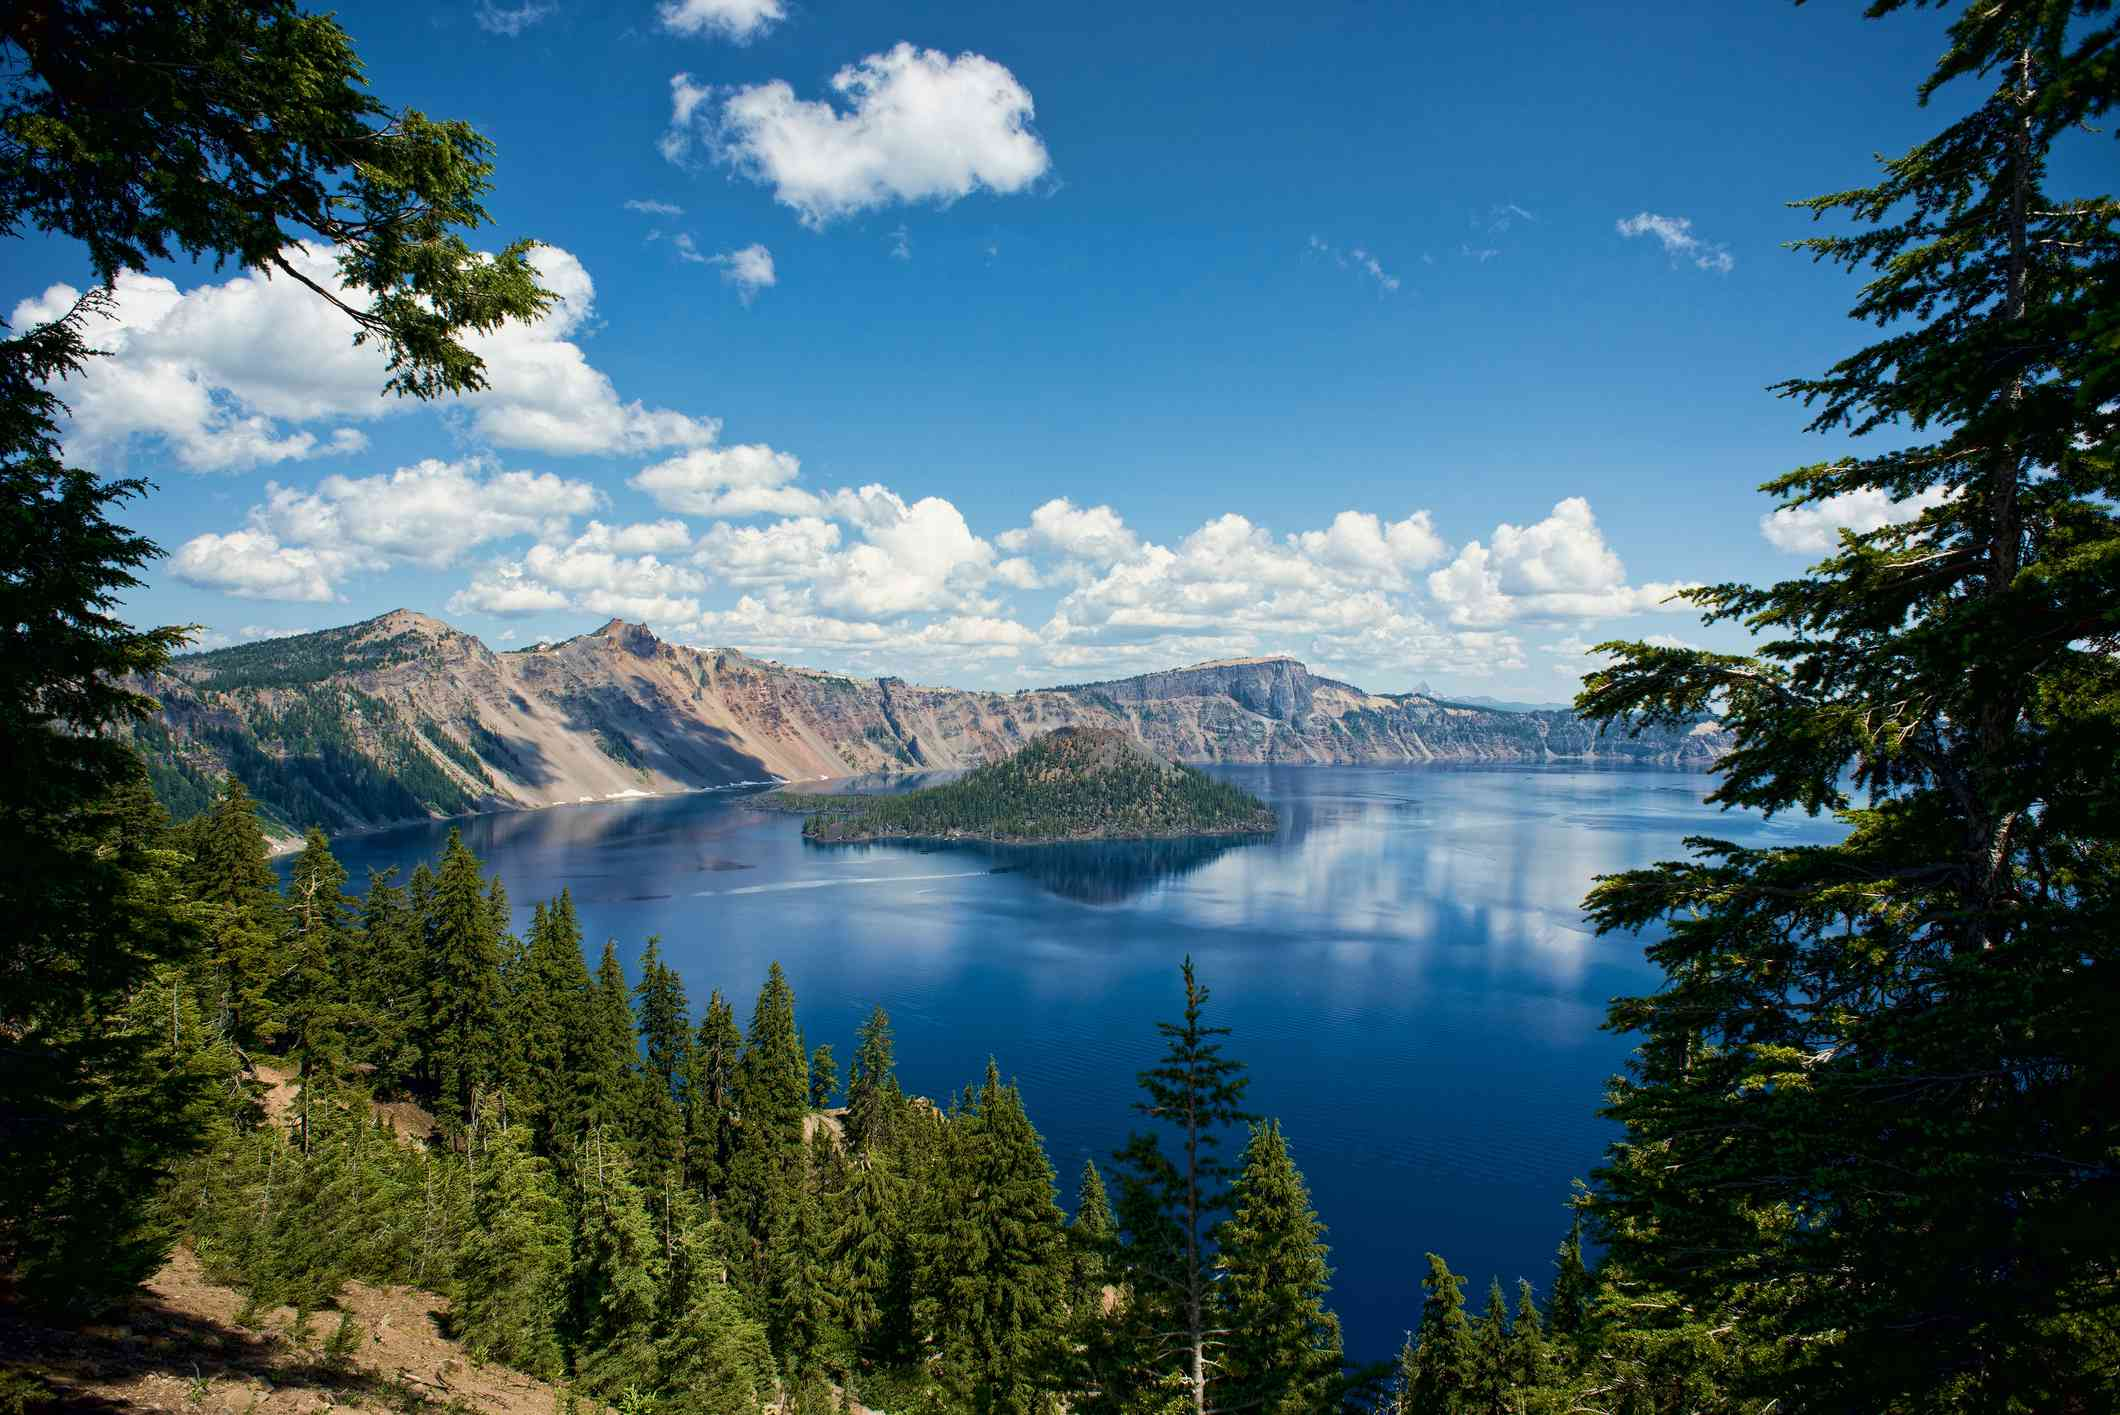 Scenic View Of Crater Lake Against Blue Sky